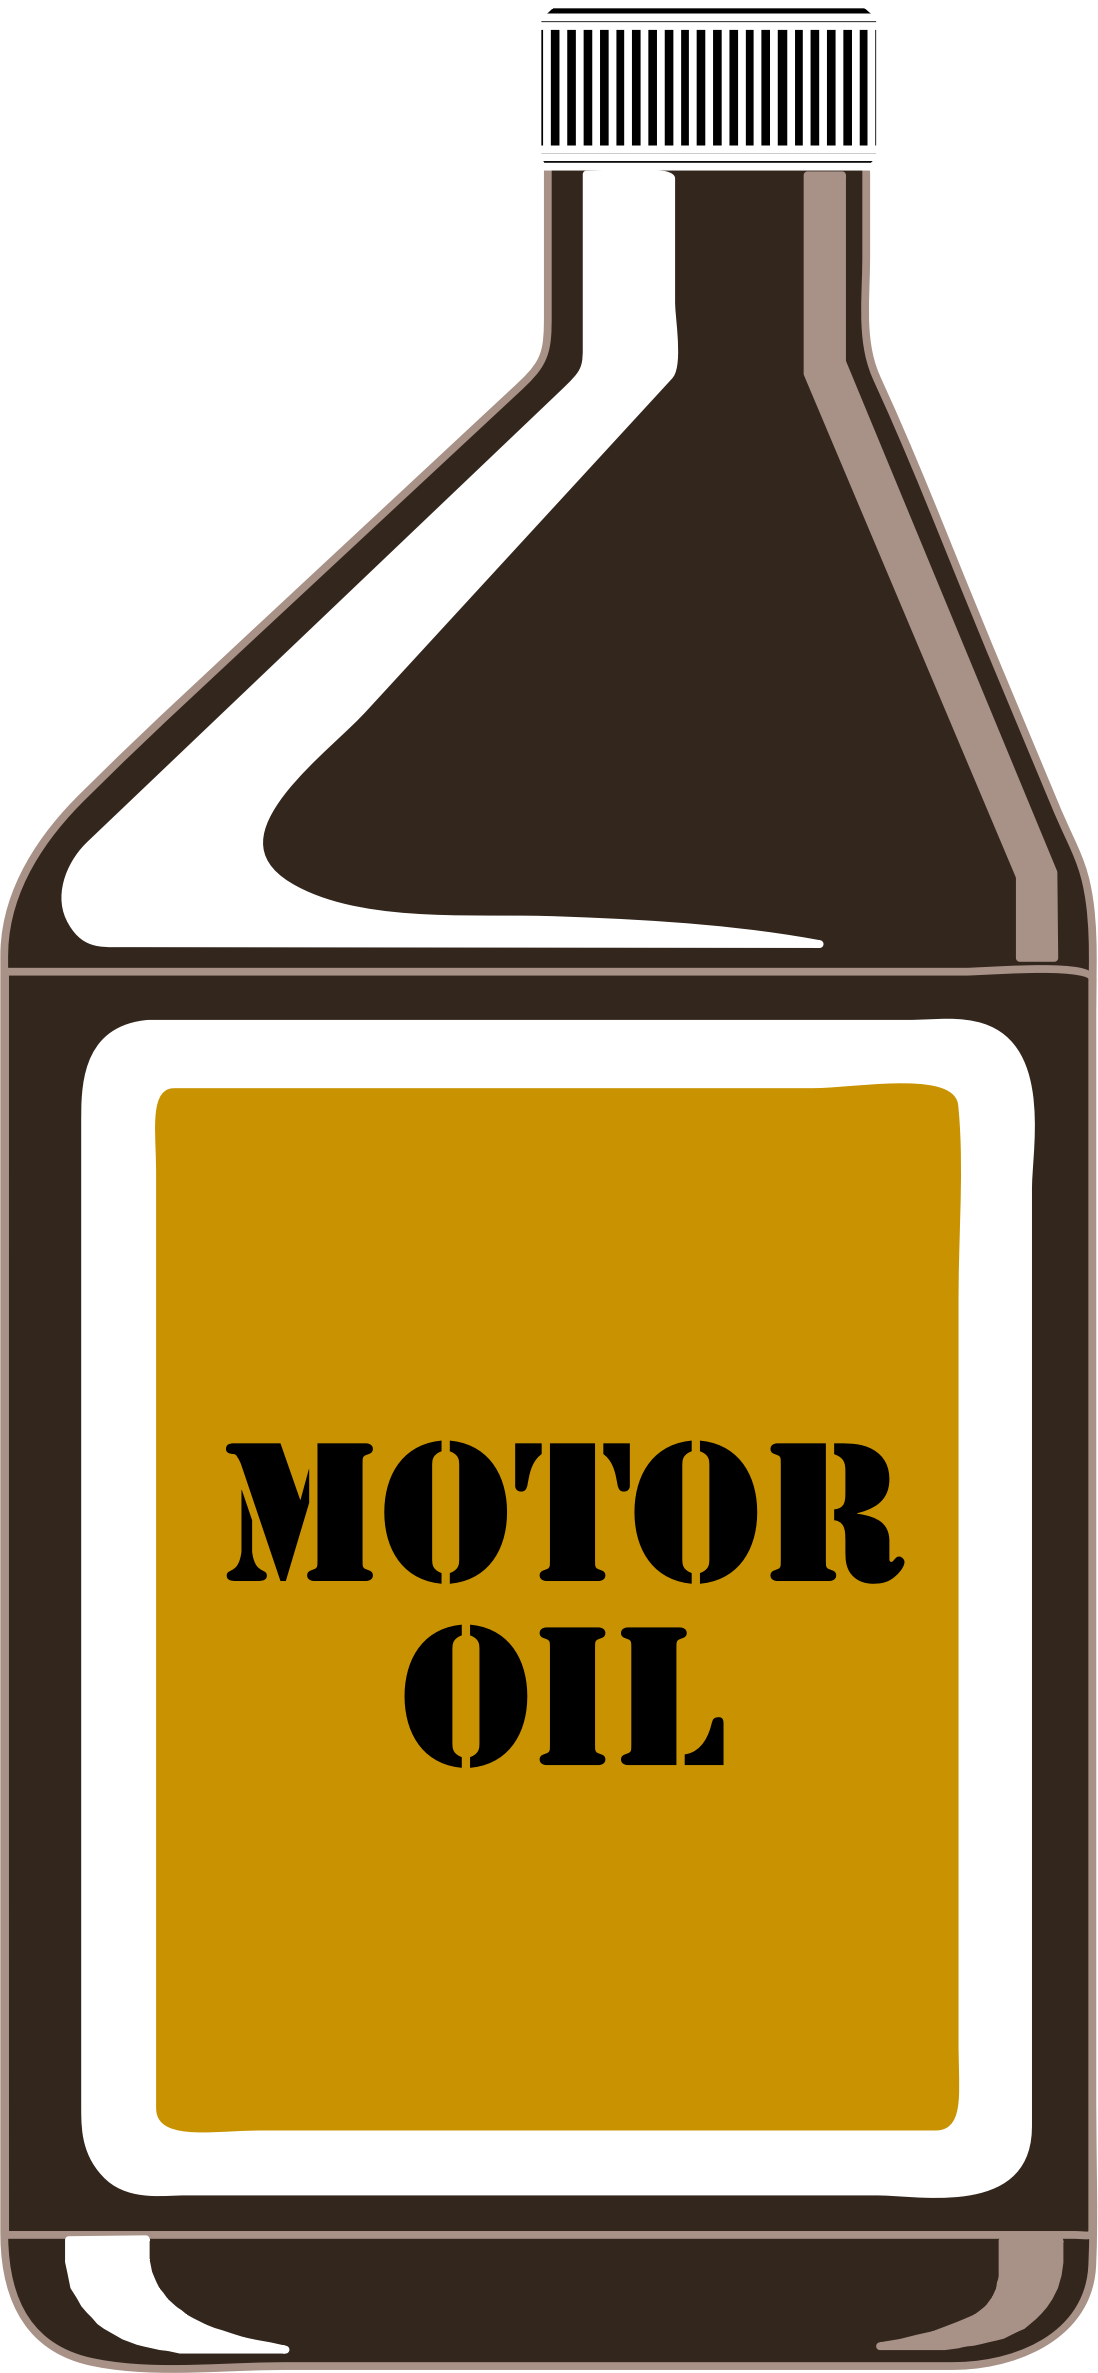 Car oil bottle clipart picture transparent stock 28+ Collection of Motor Oil Clipart | High quality, free cliparts ... picture transparent stock